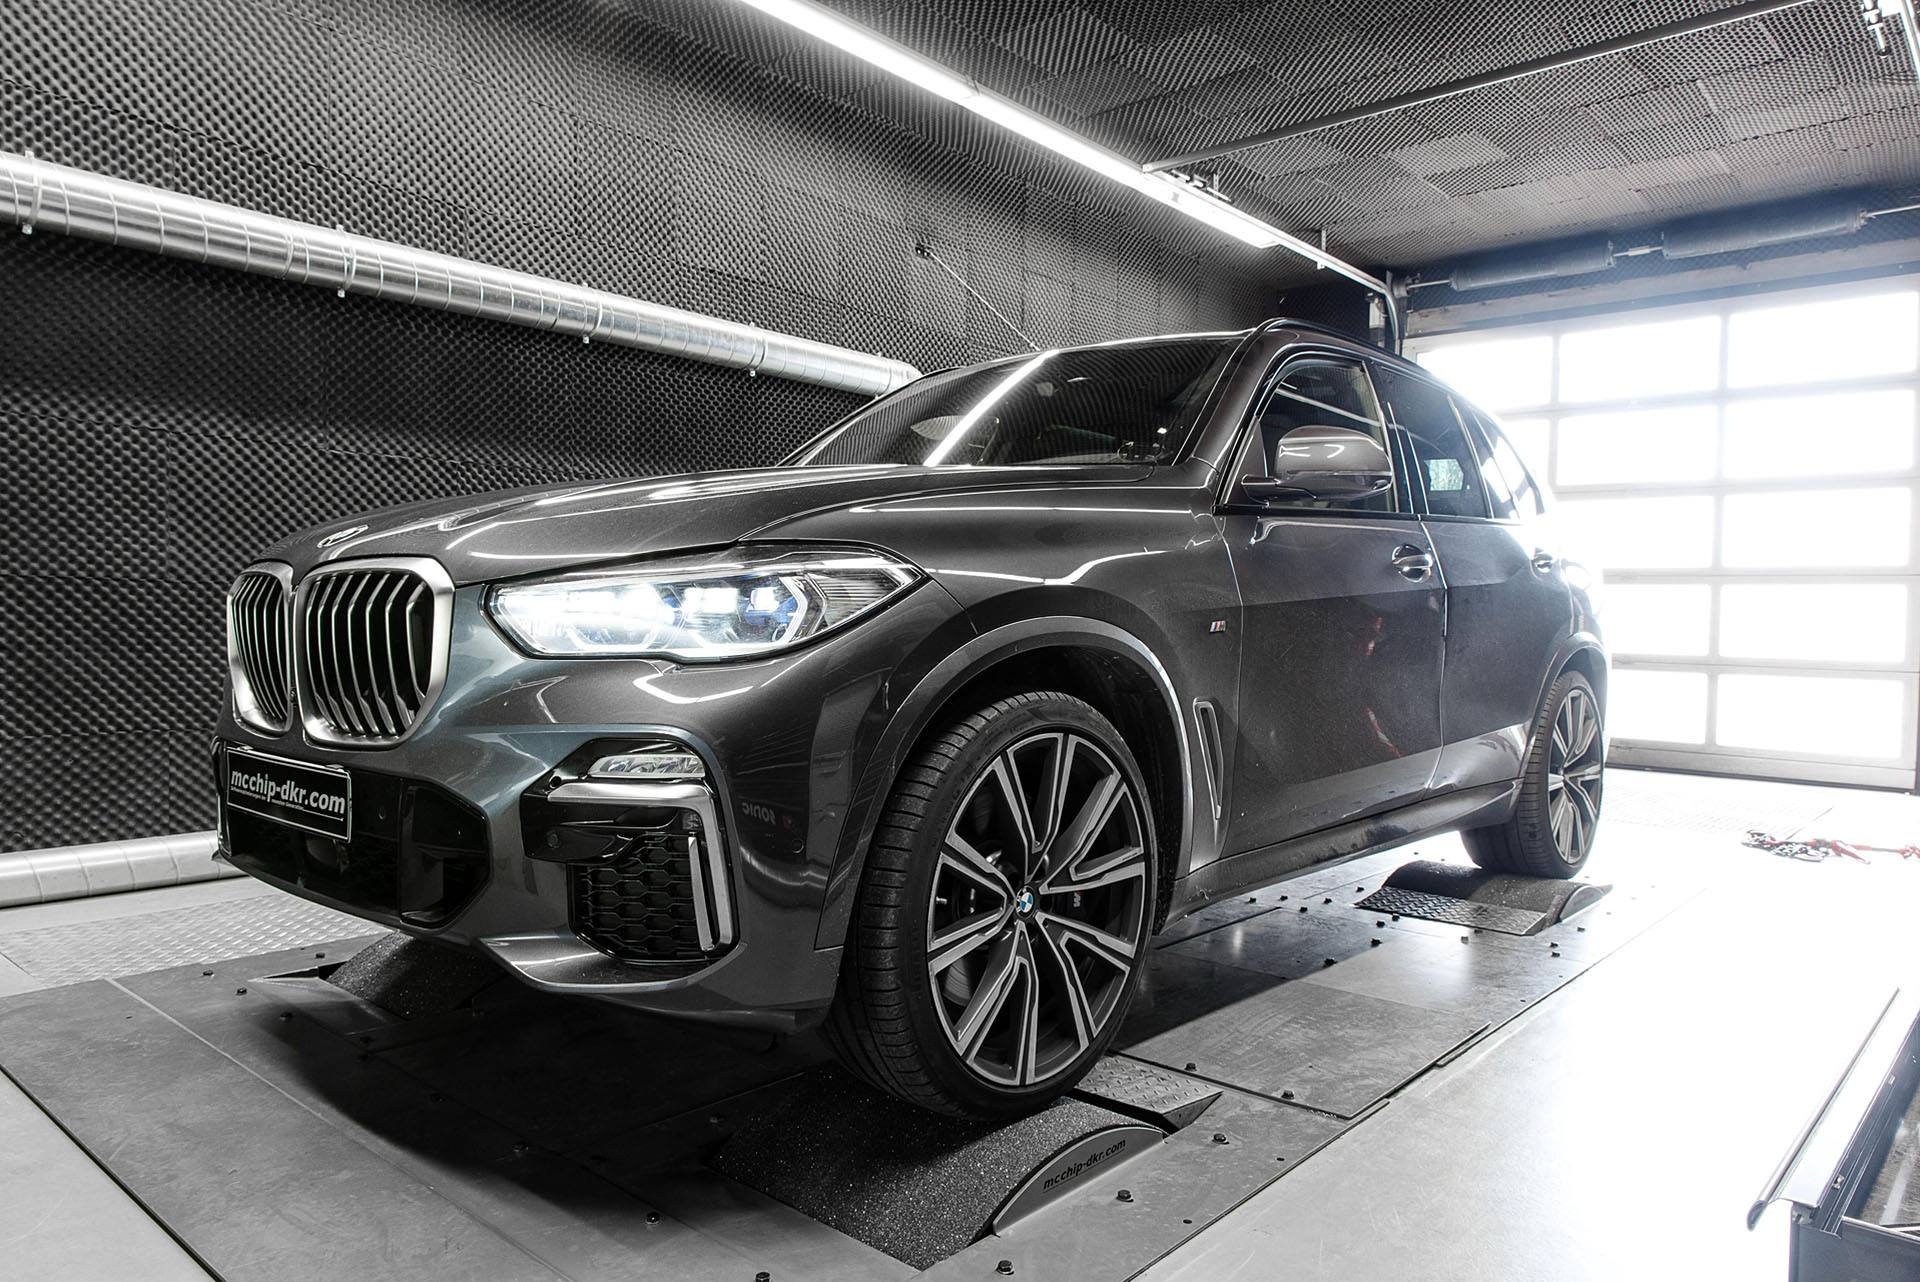 Bmw X5 M50d Has 515 Hp With Mcchip Dkr Tune